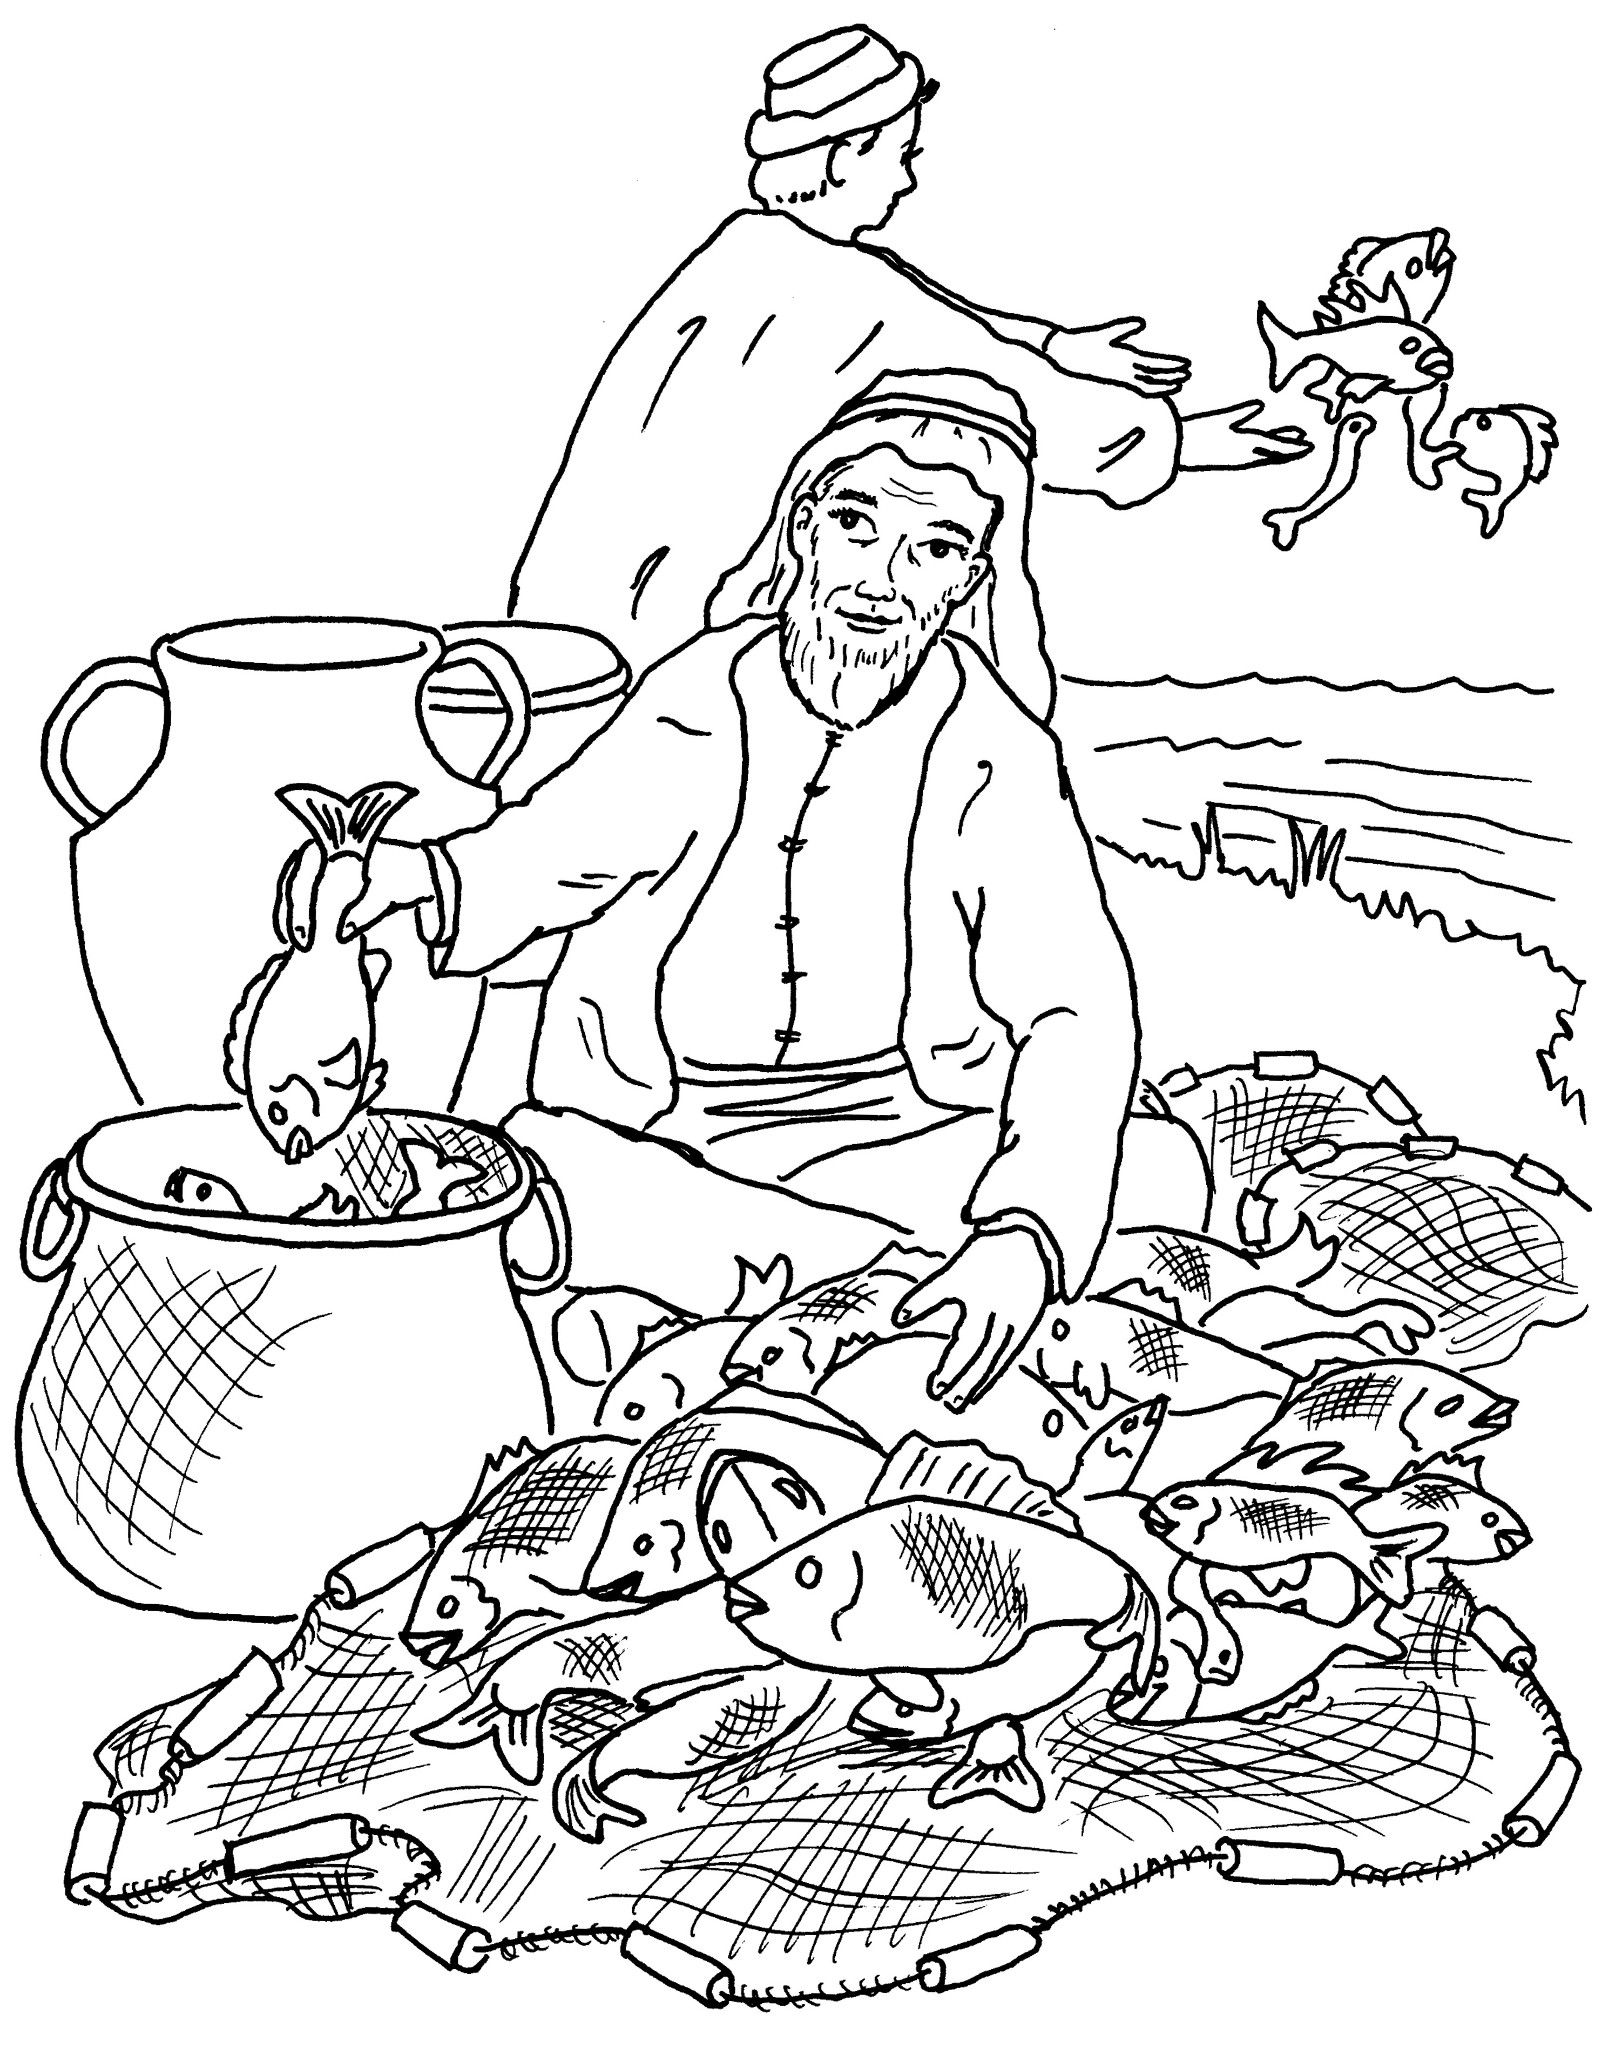 Cut And Paste Parable Of The Parables In Art Pinterest